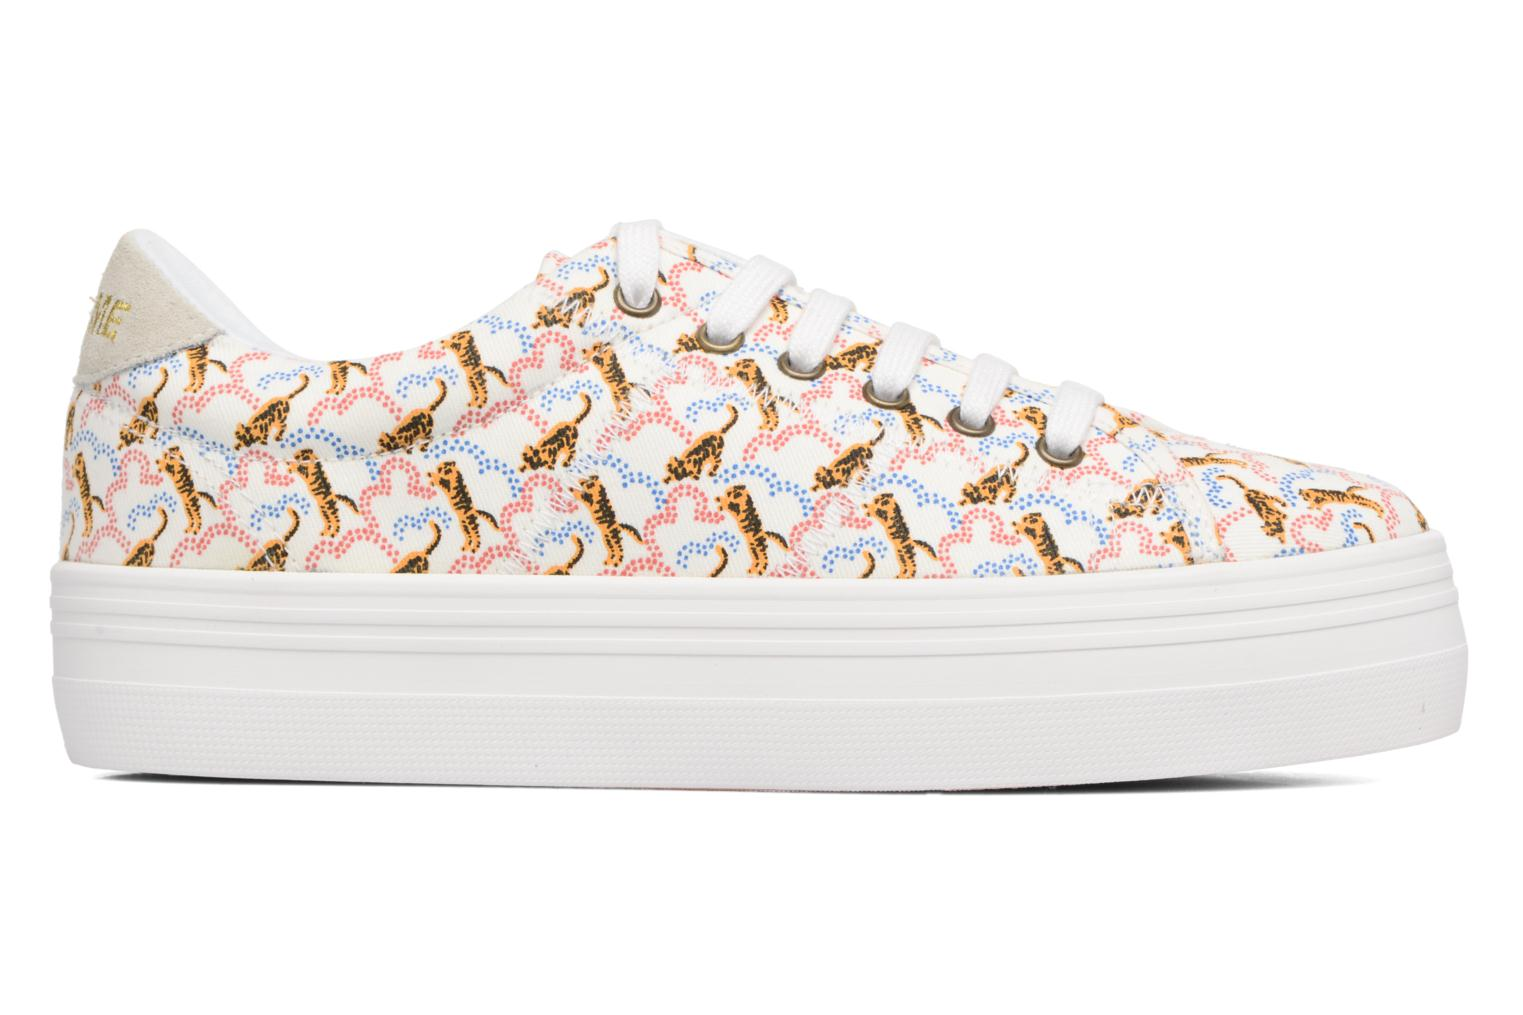 Sneakers No Name Plato sneaker pink twill print tiger Wit achterkant